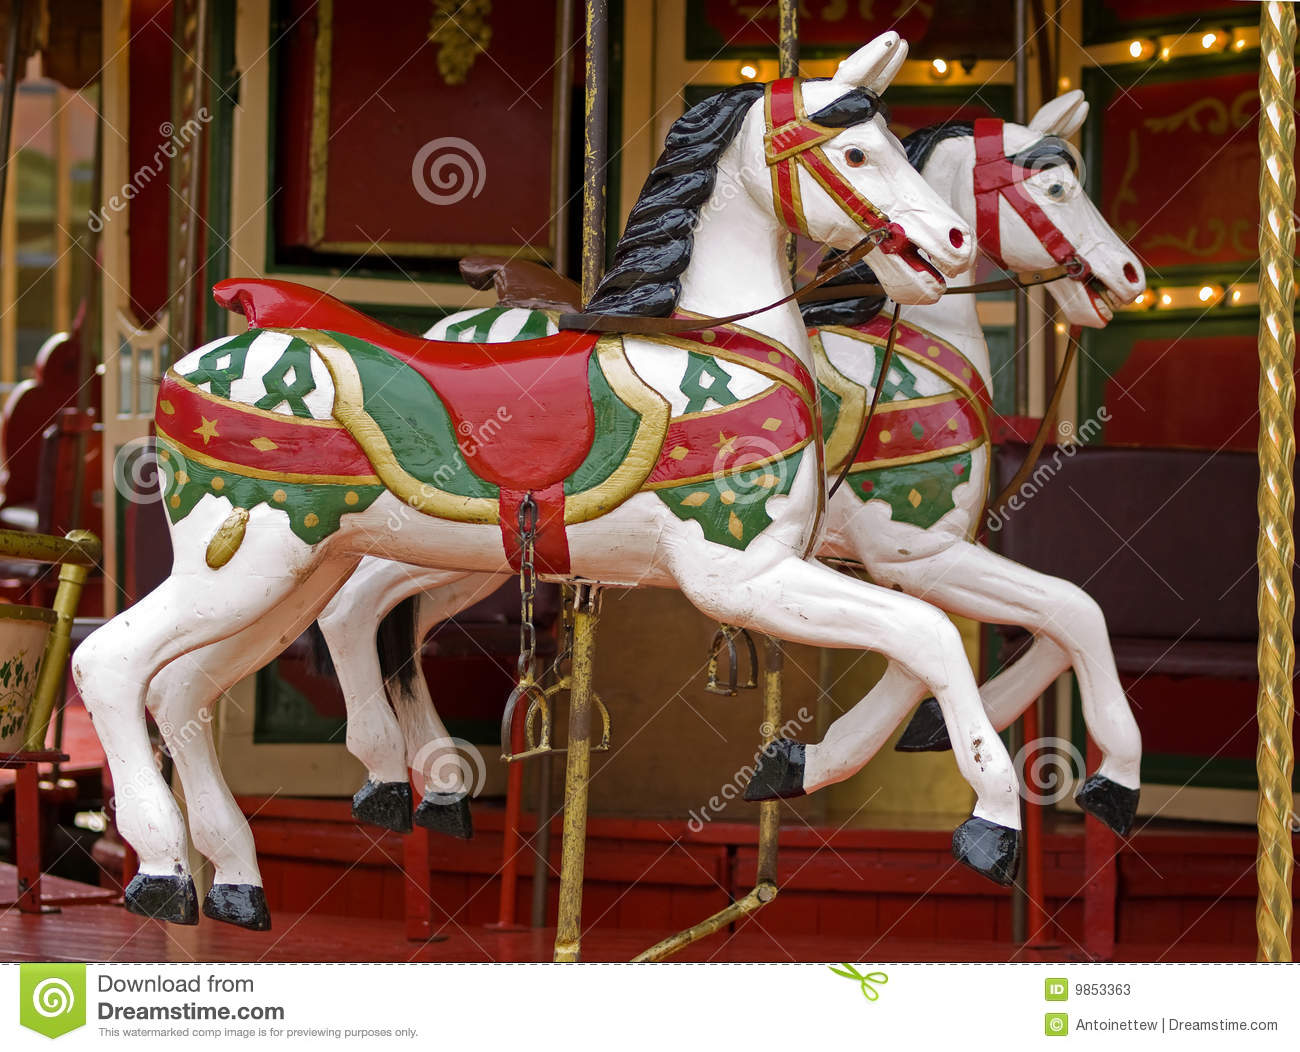 Horses on merry go round stock image. Image of happy ...